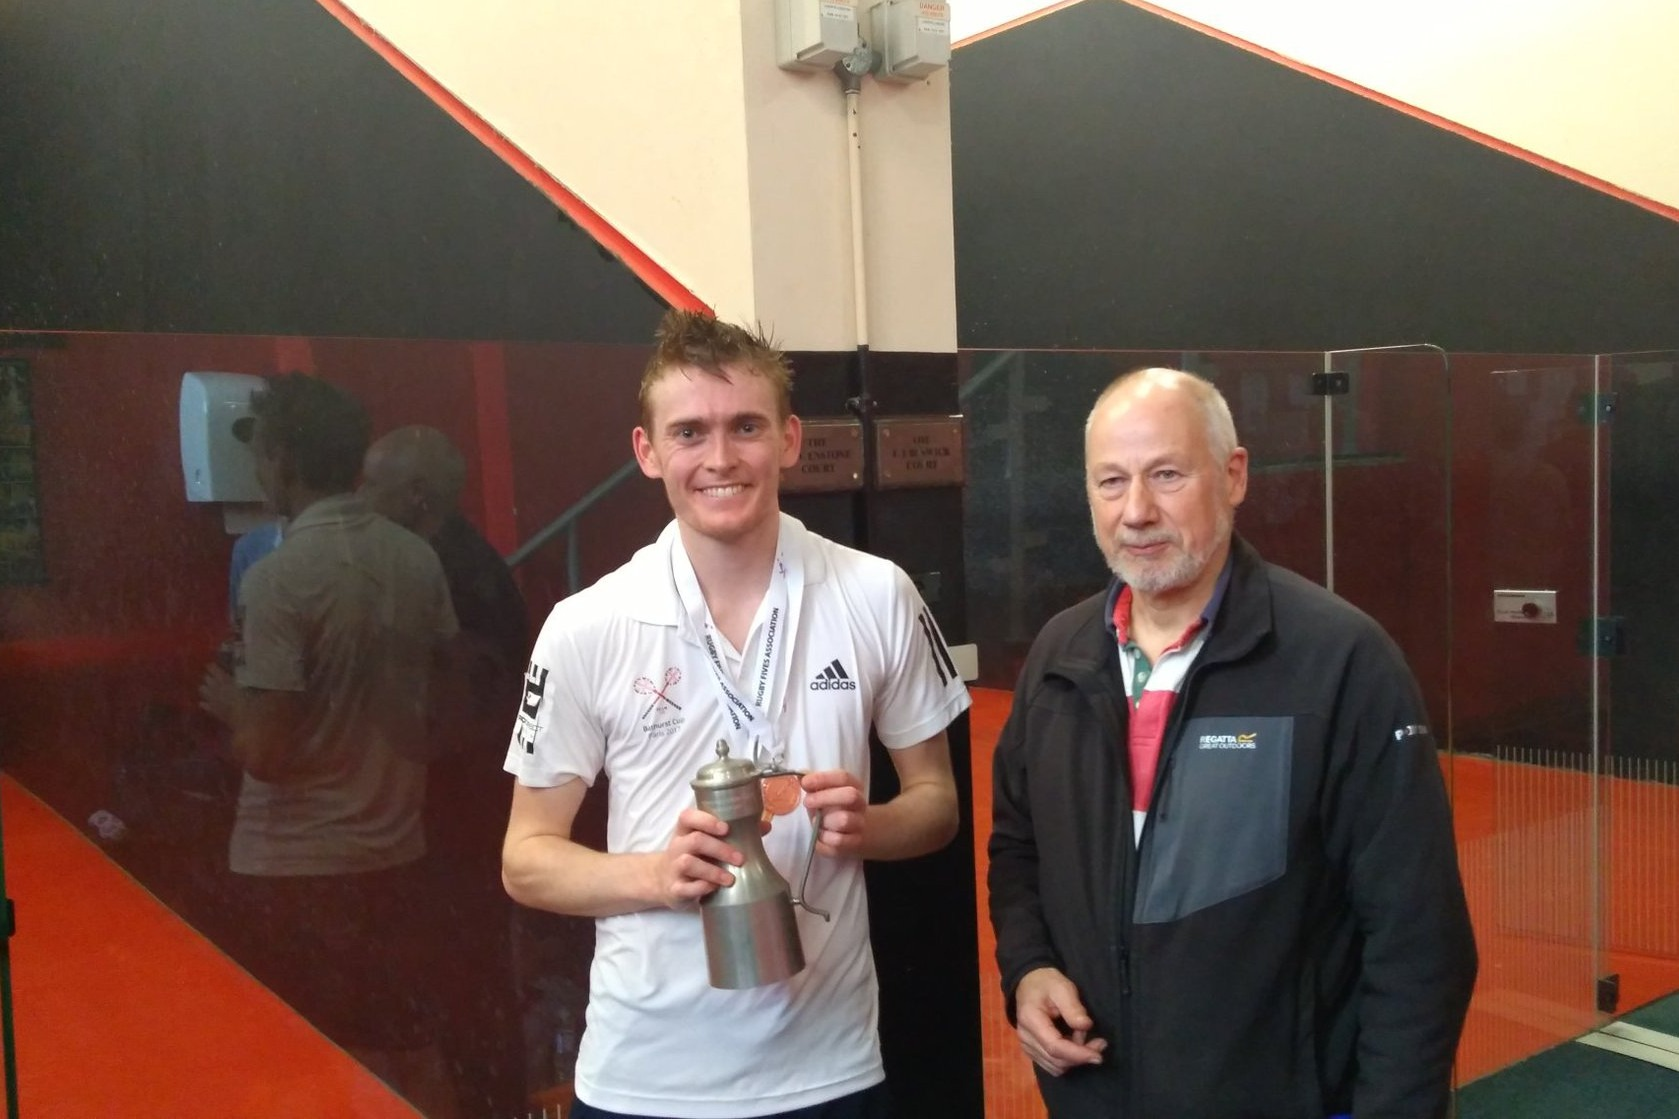 The Yorkshire Open Singles Champion